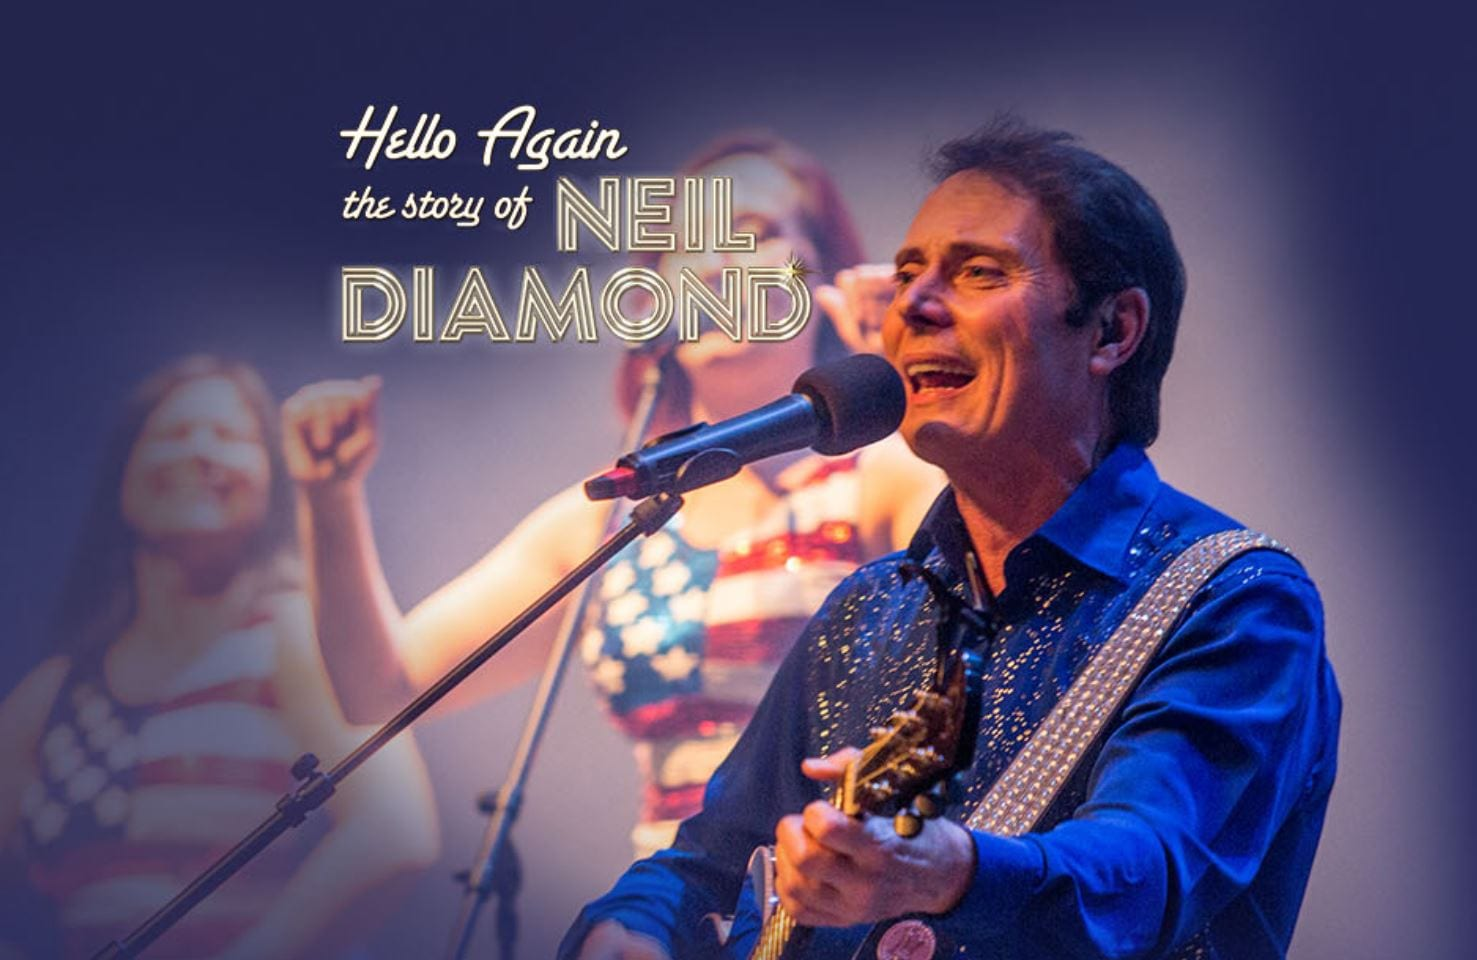 Hello Again: The Story of Neil Diamond at Blackpool Grand Theatre